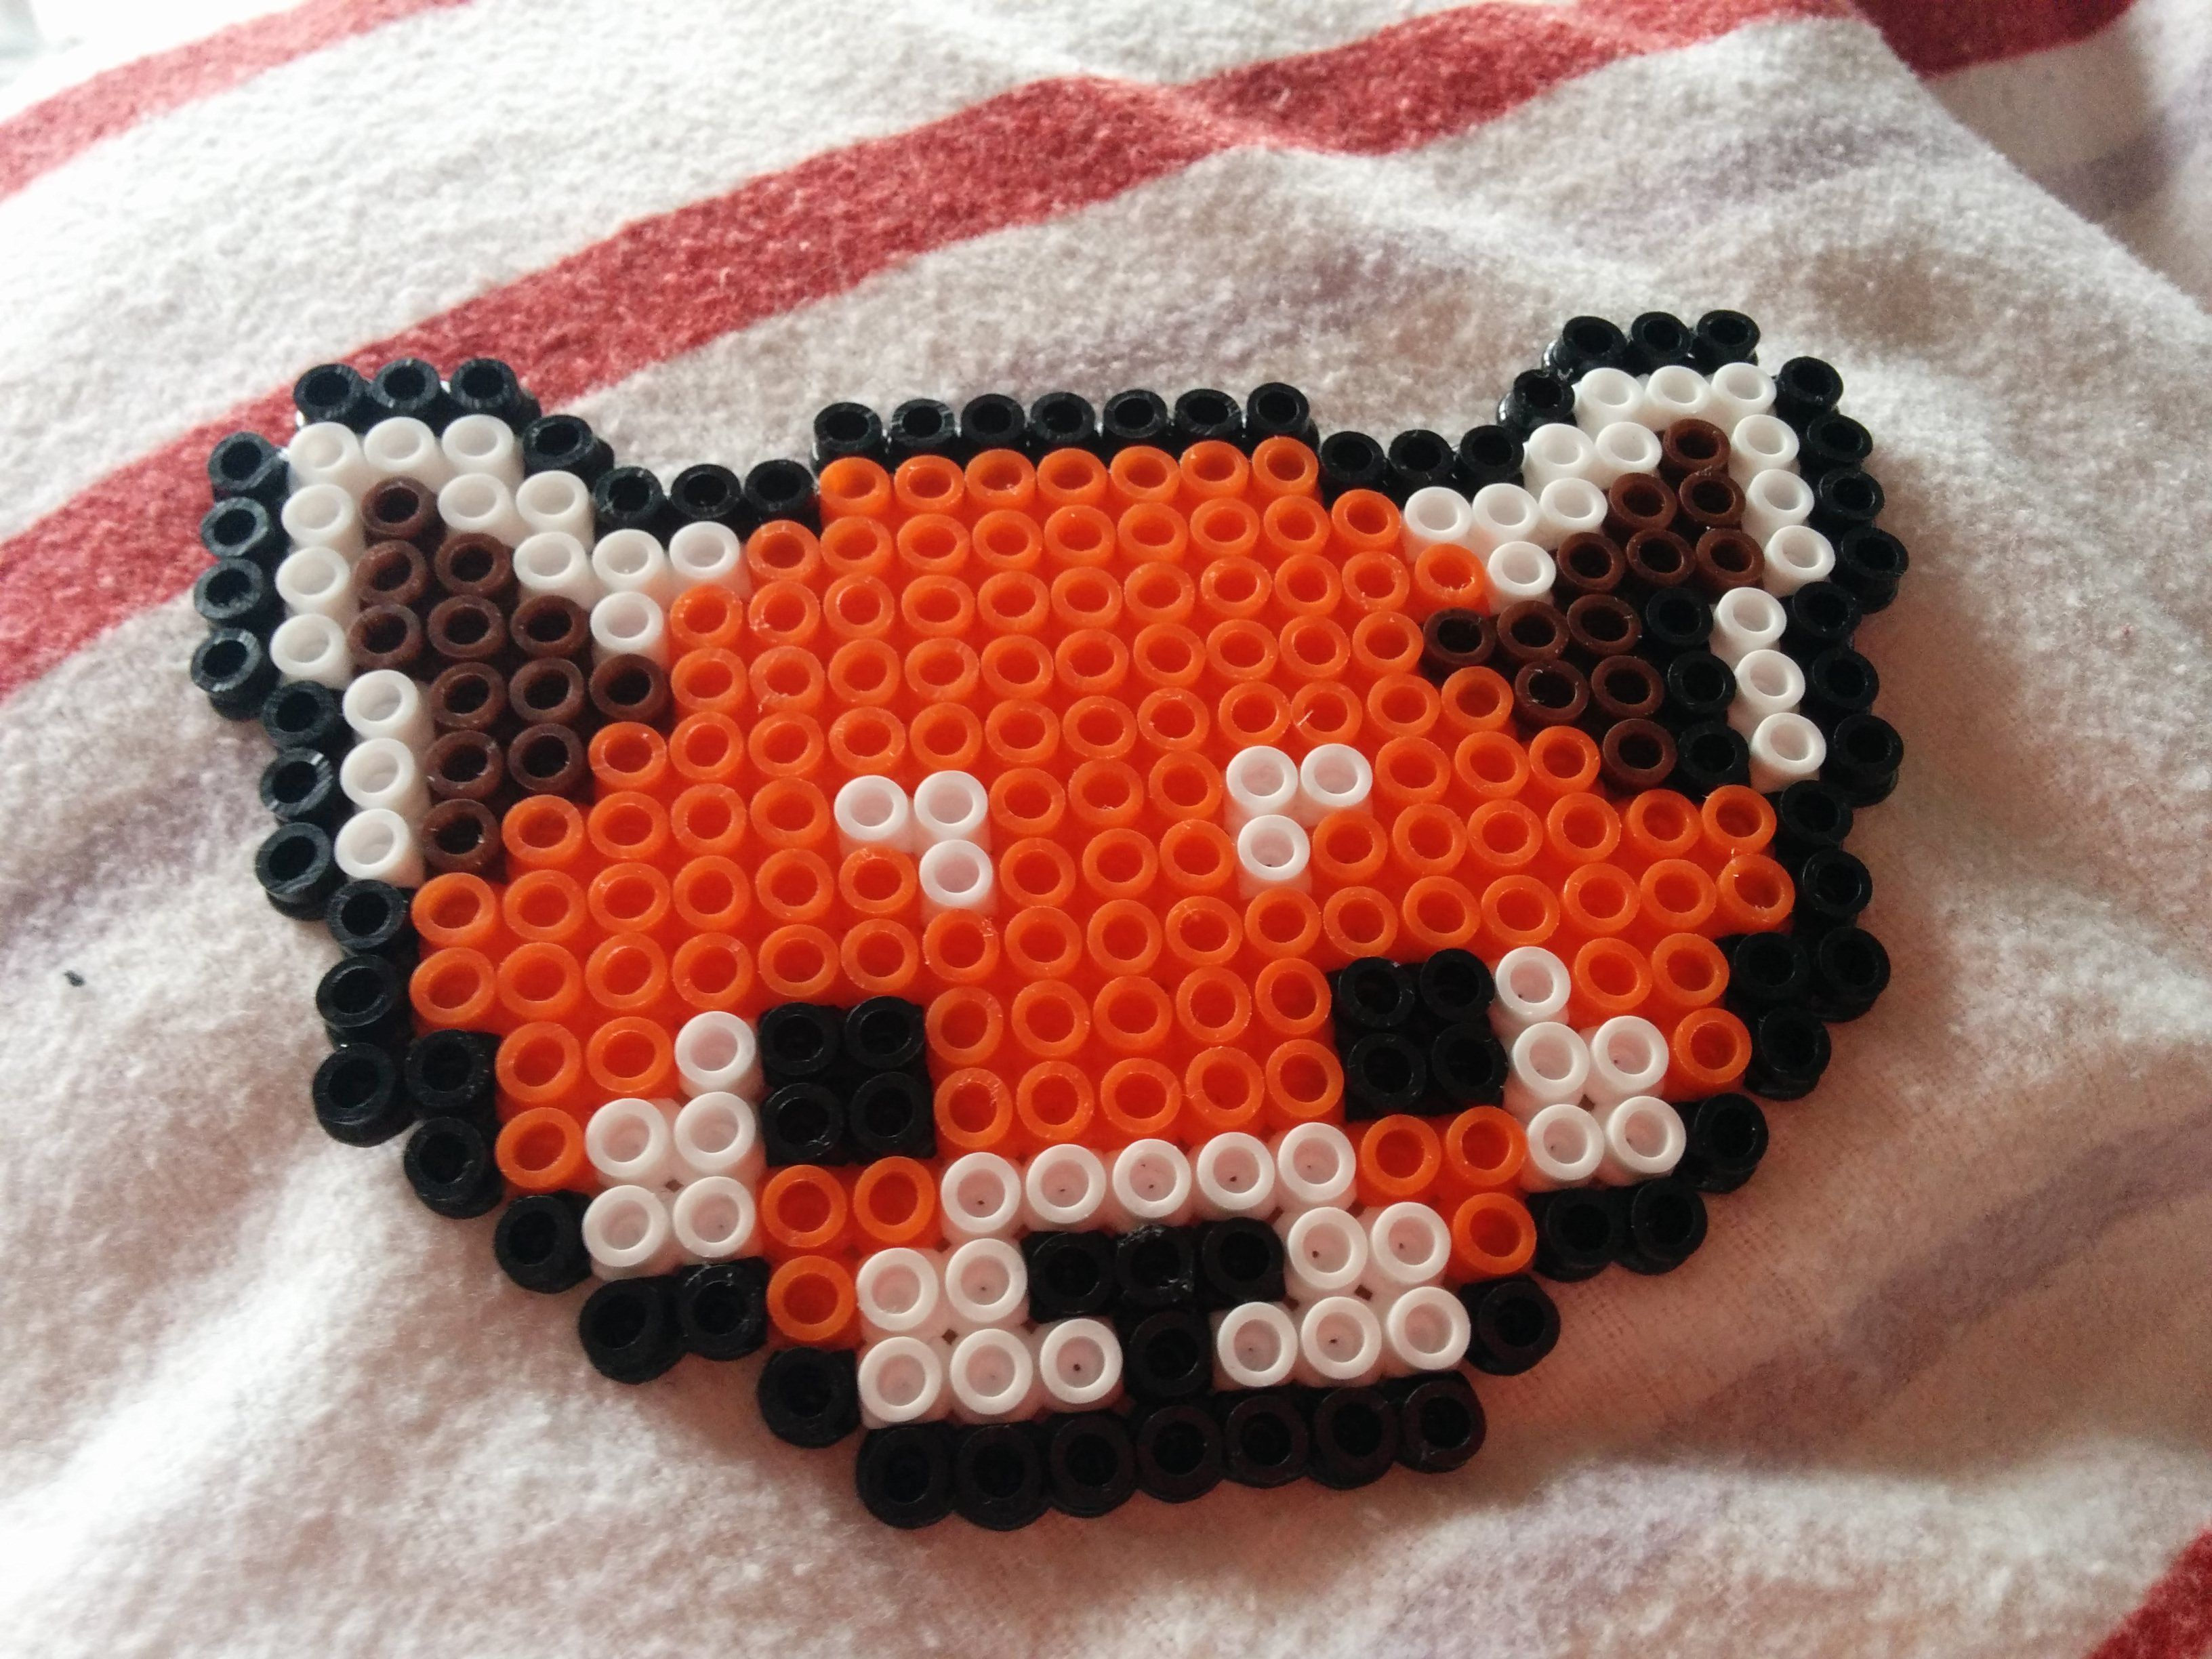 Red Panda Face Perler Bead Melty Bead Patterns Perler Bead Art Perler Beads Designs